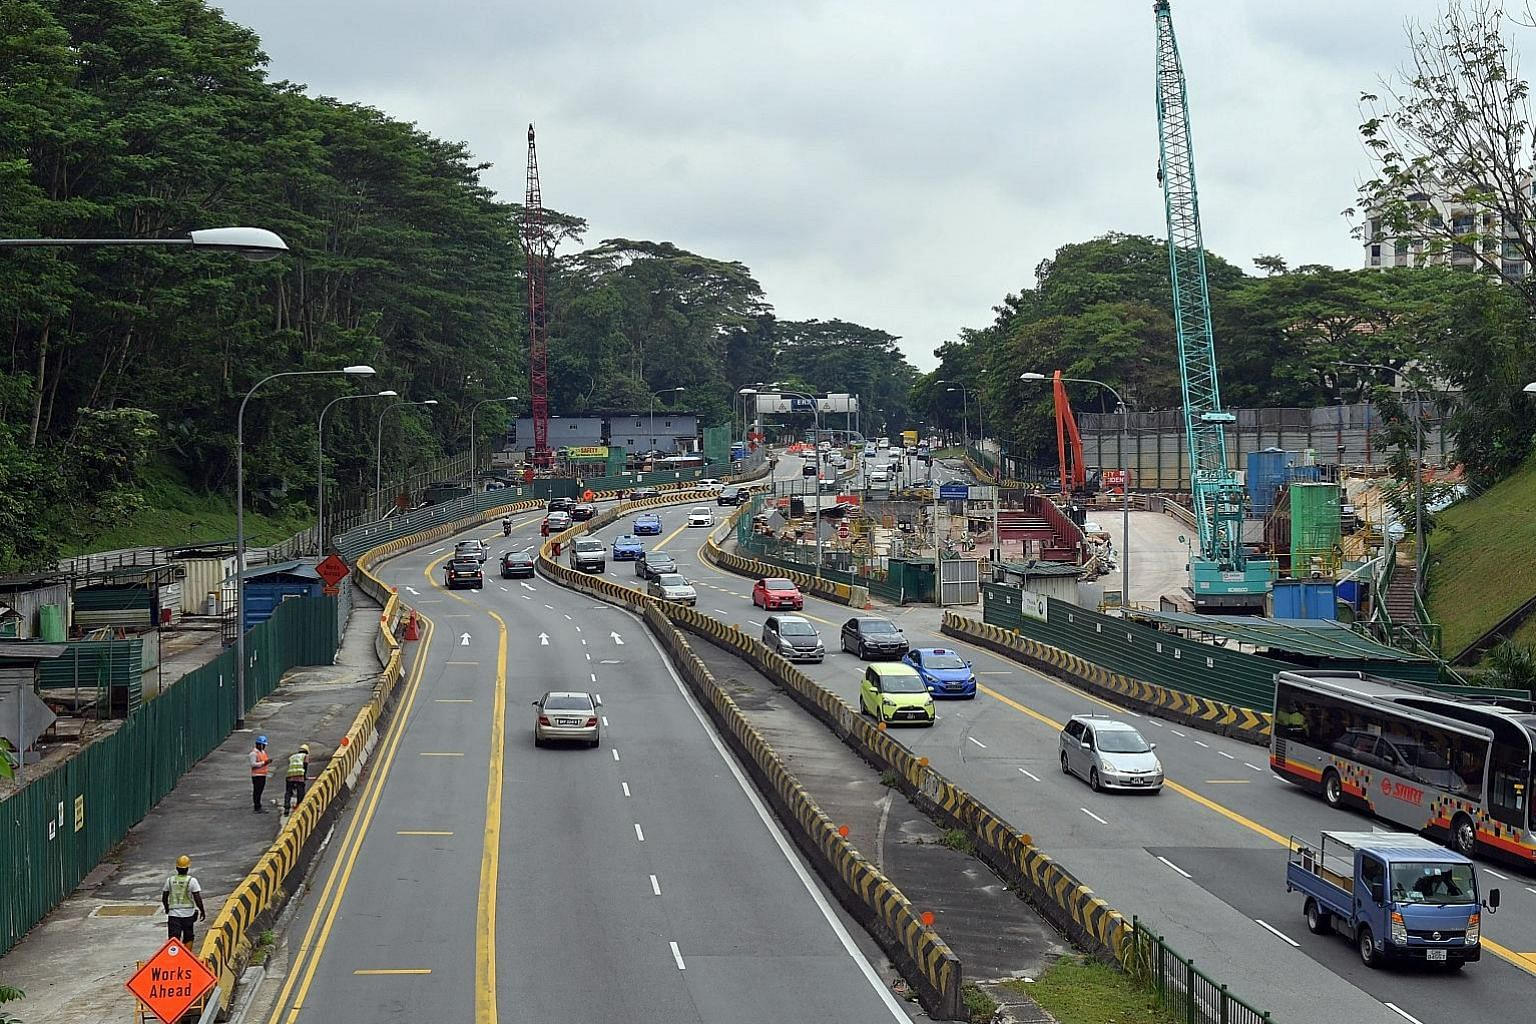 Construction work outside Hume Park 1 condo in Upper Bukit Timah Road in 2017 sparked talk of an MRT station being opened there. When Southwest District Mayor Low Yen Ling (Chua Chu Kang GRC) asked if the station could be ready before 2025, Senior Mi